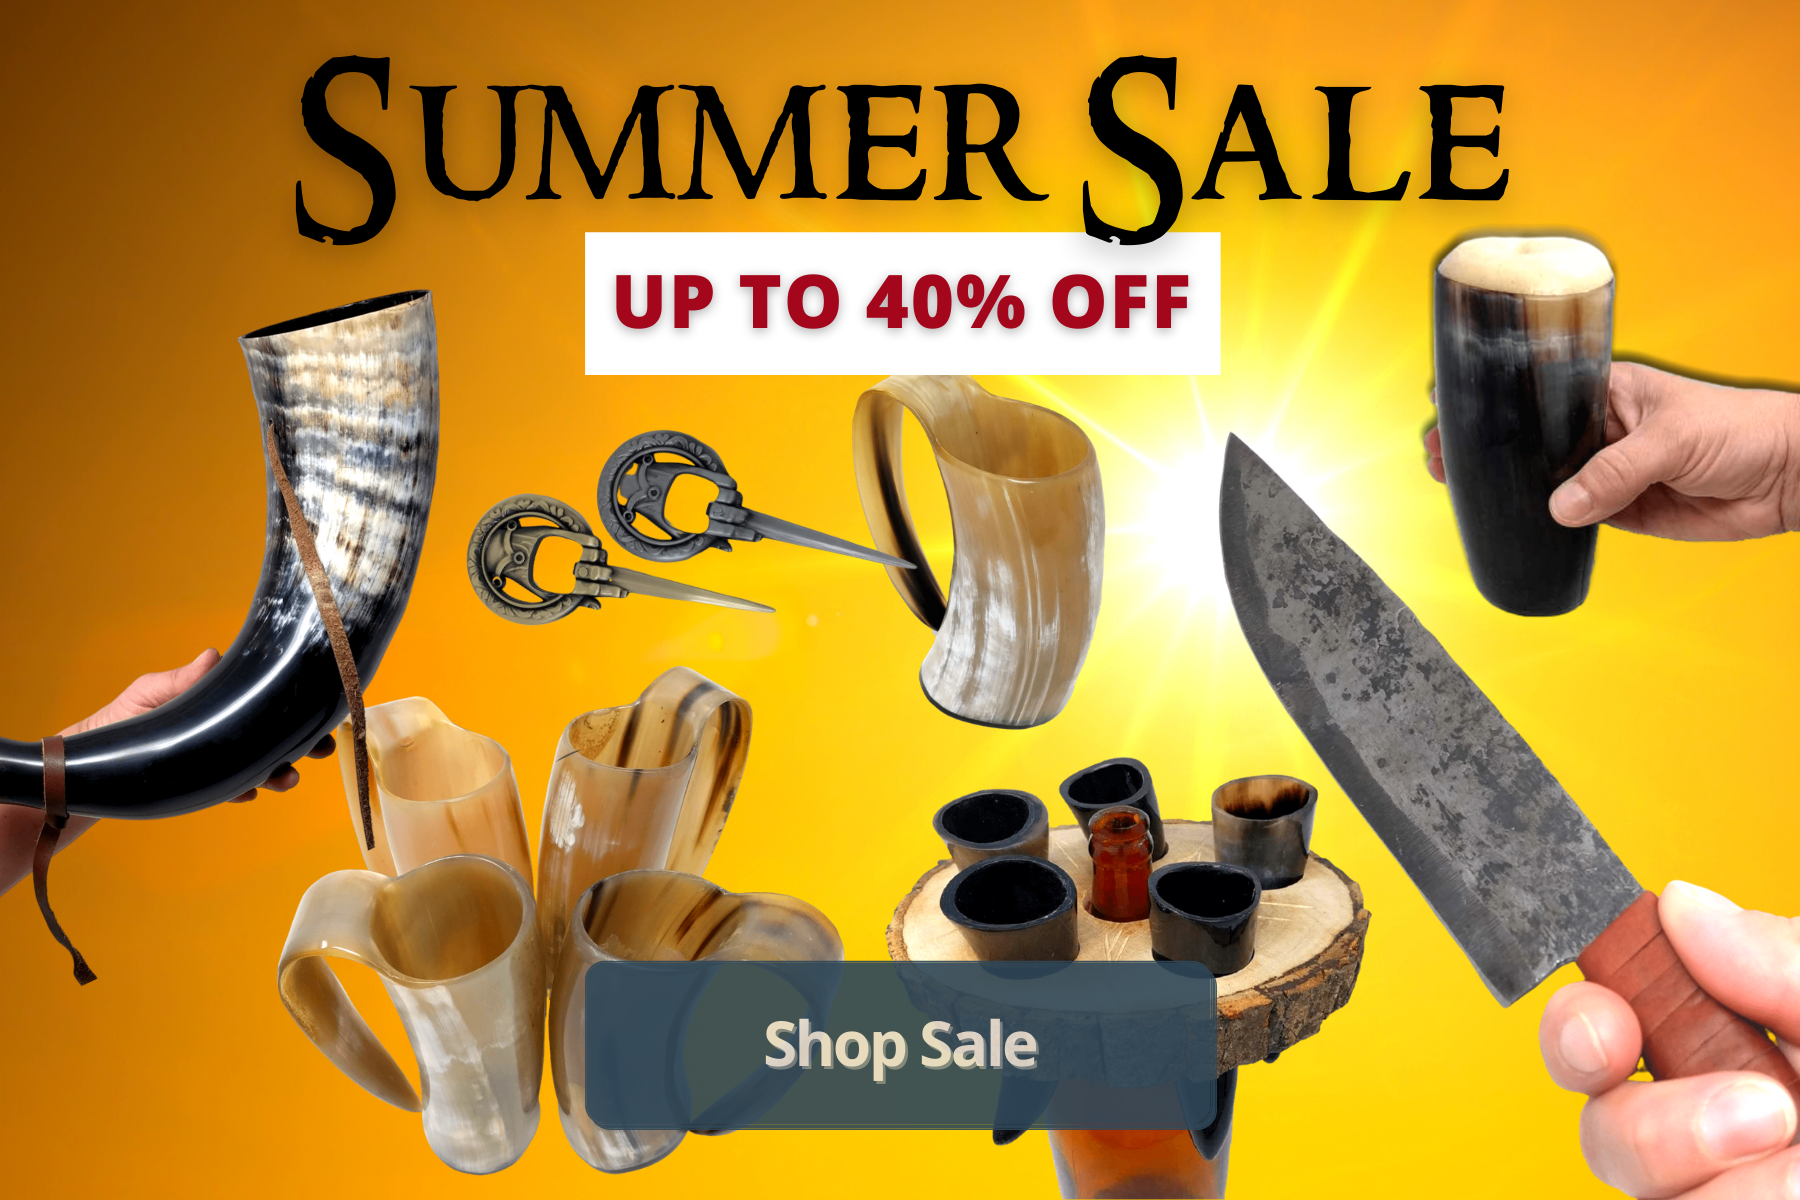 AleHorn's summer sale includes viking products up to 40% off. Mead cups to Raven Viking Knife to Golden Tankards and bottle openers and Gjallarhorns and shot glass wood holders